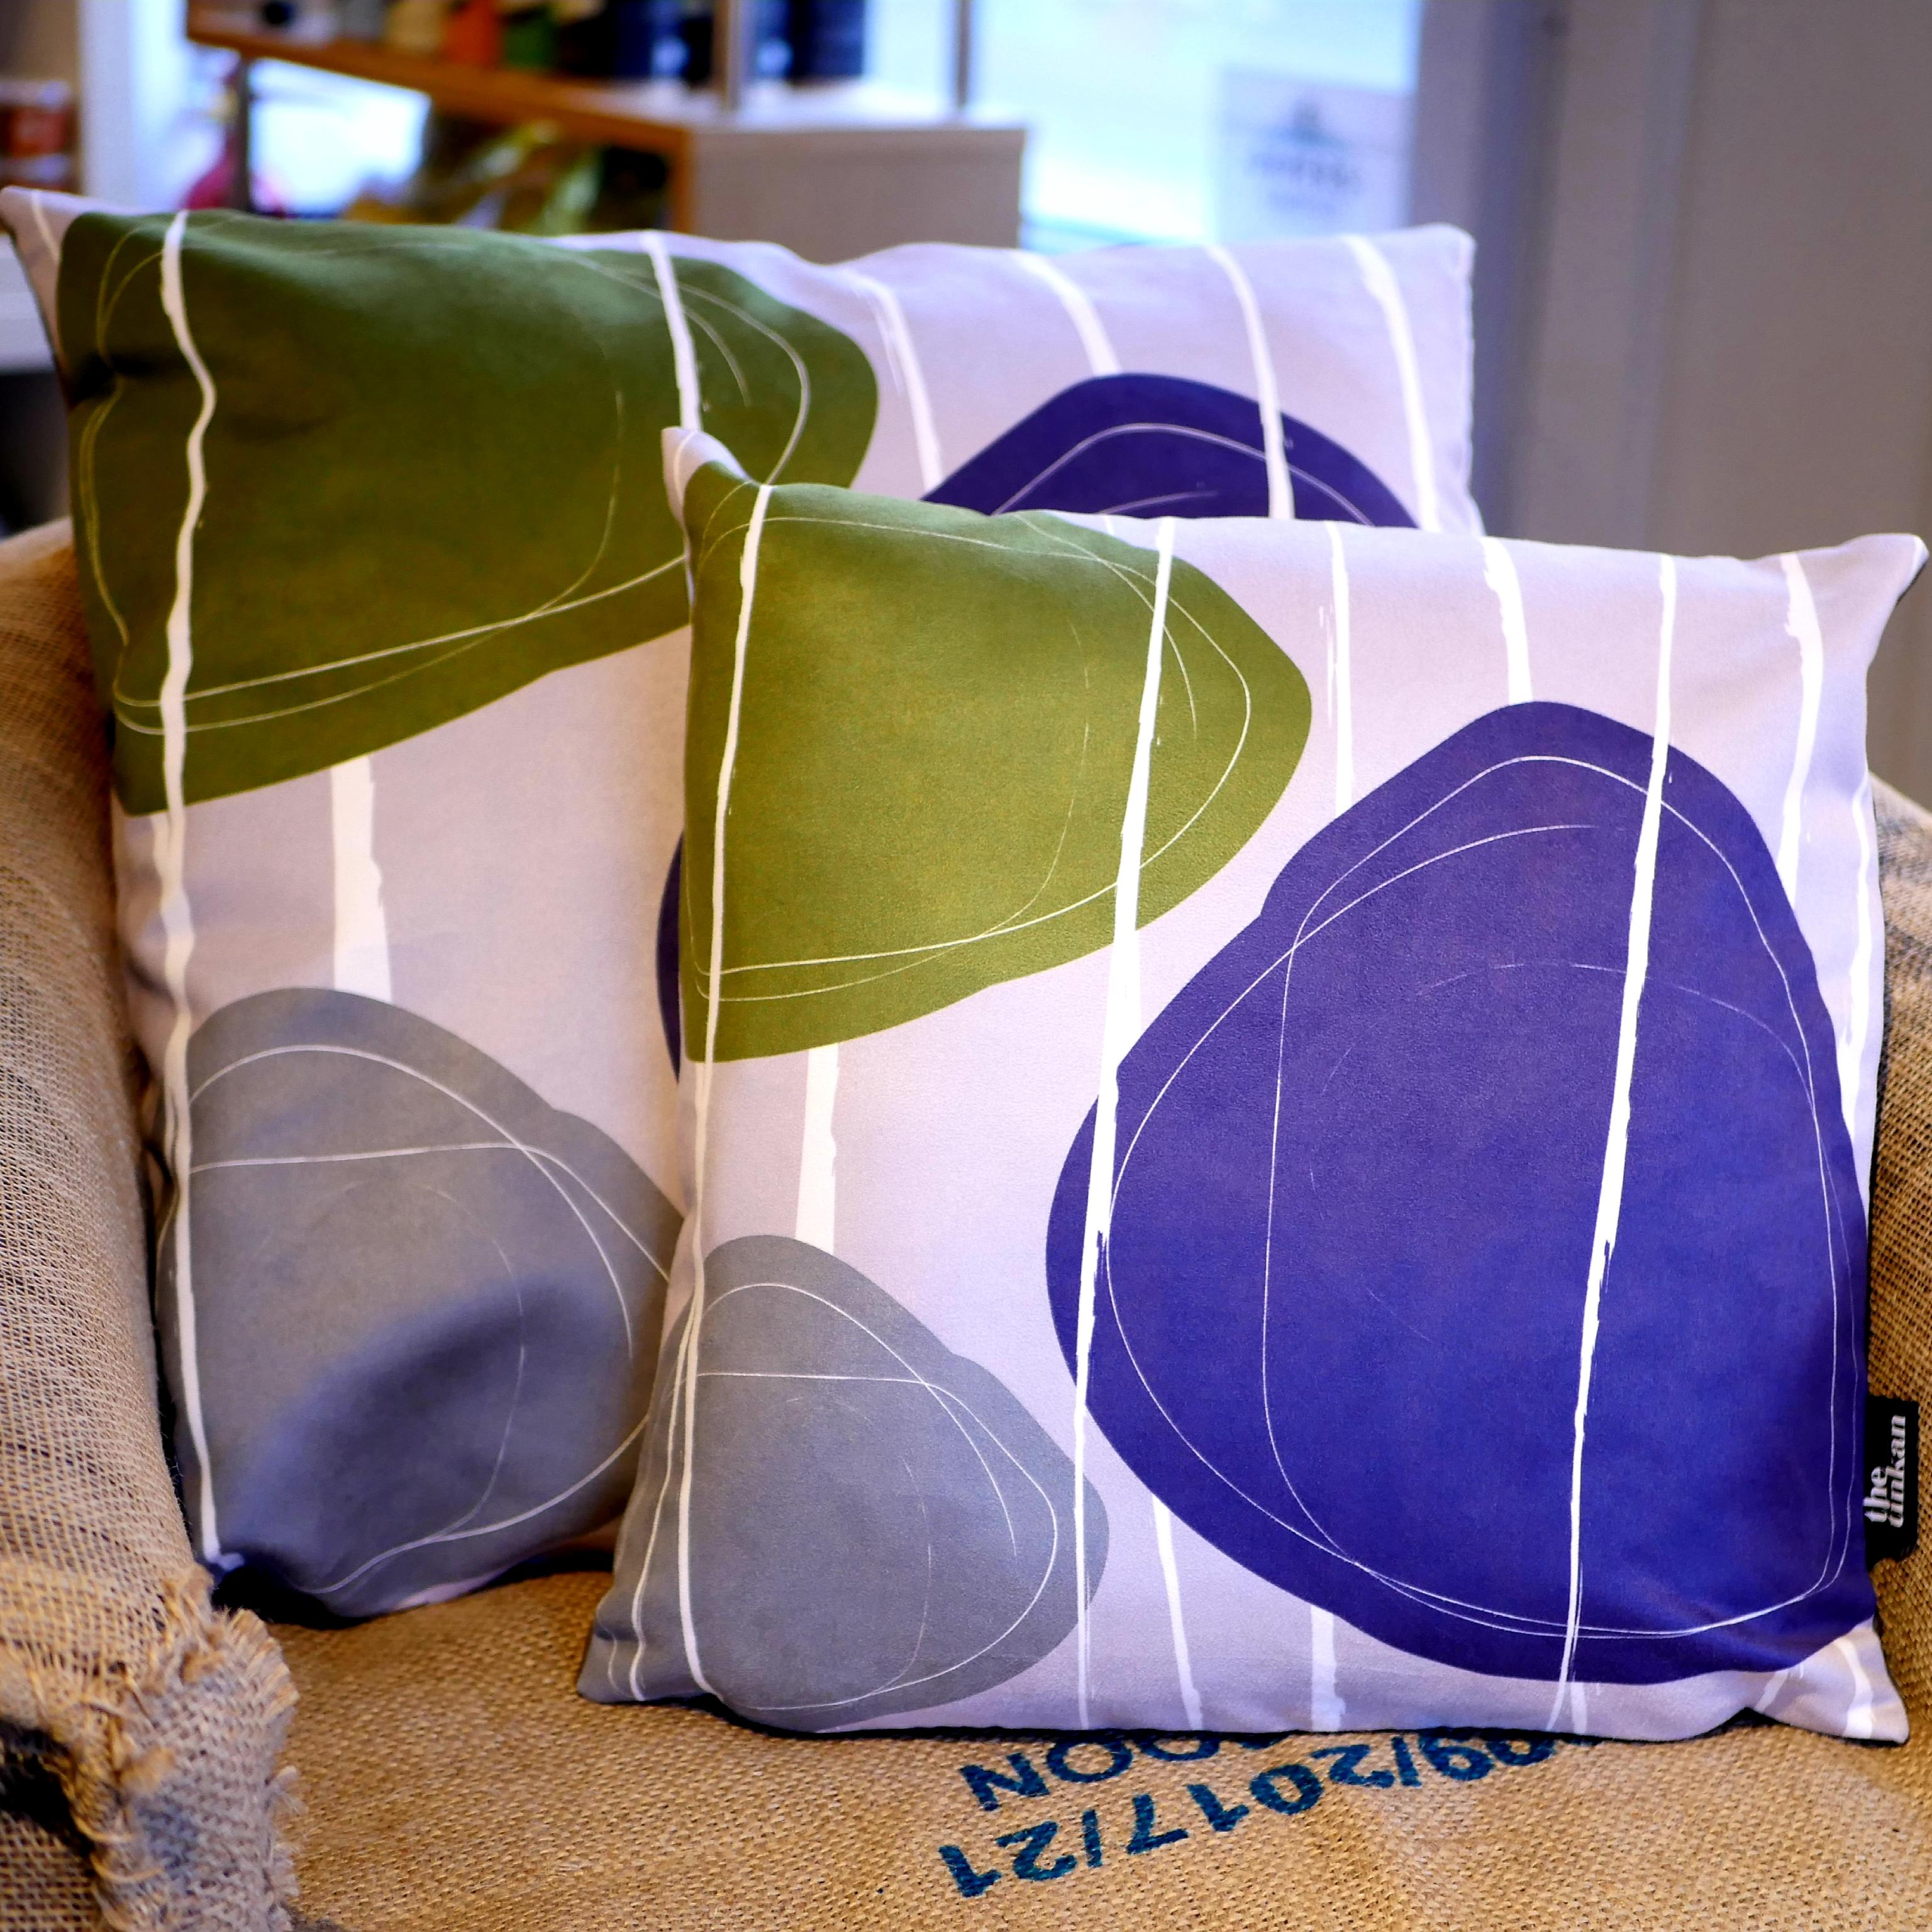 Purple, olive green & grey faux suede soft feel Abstract Pebbles Cushions, 43cm & 57cm square, with luxury inner pads designed by thetinkan. VIEW PRODUCT >>